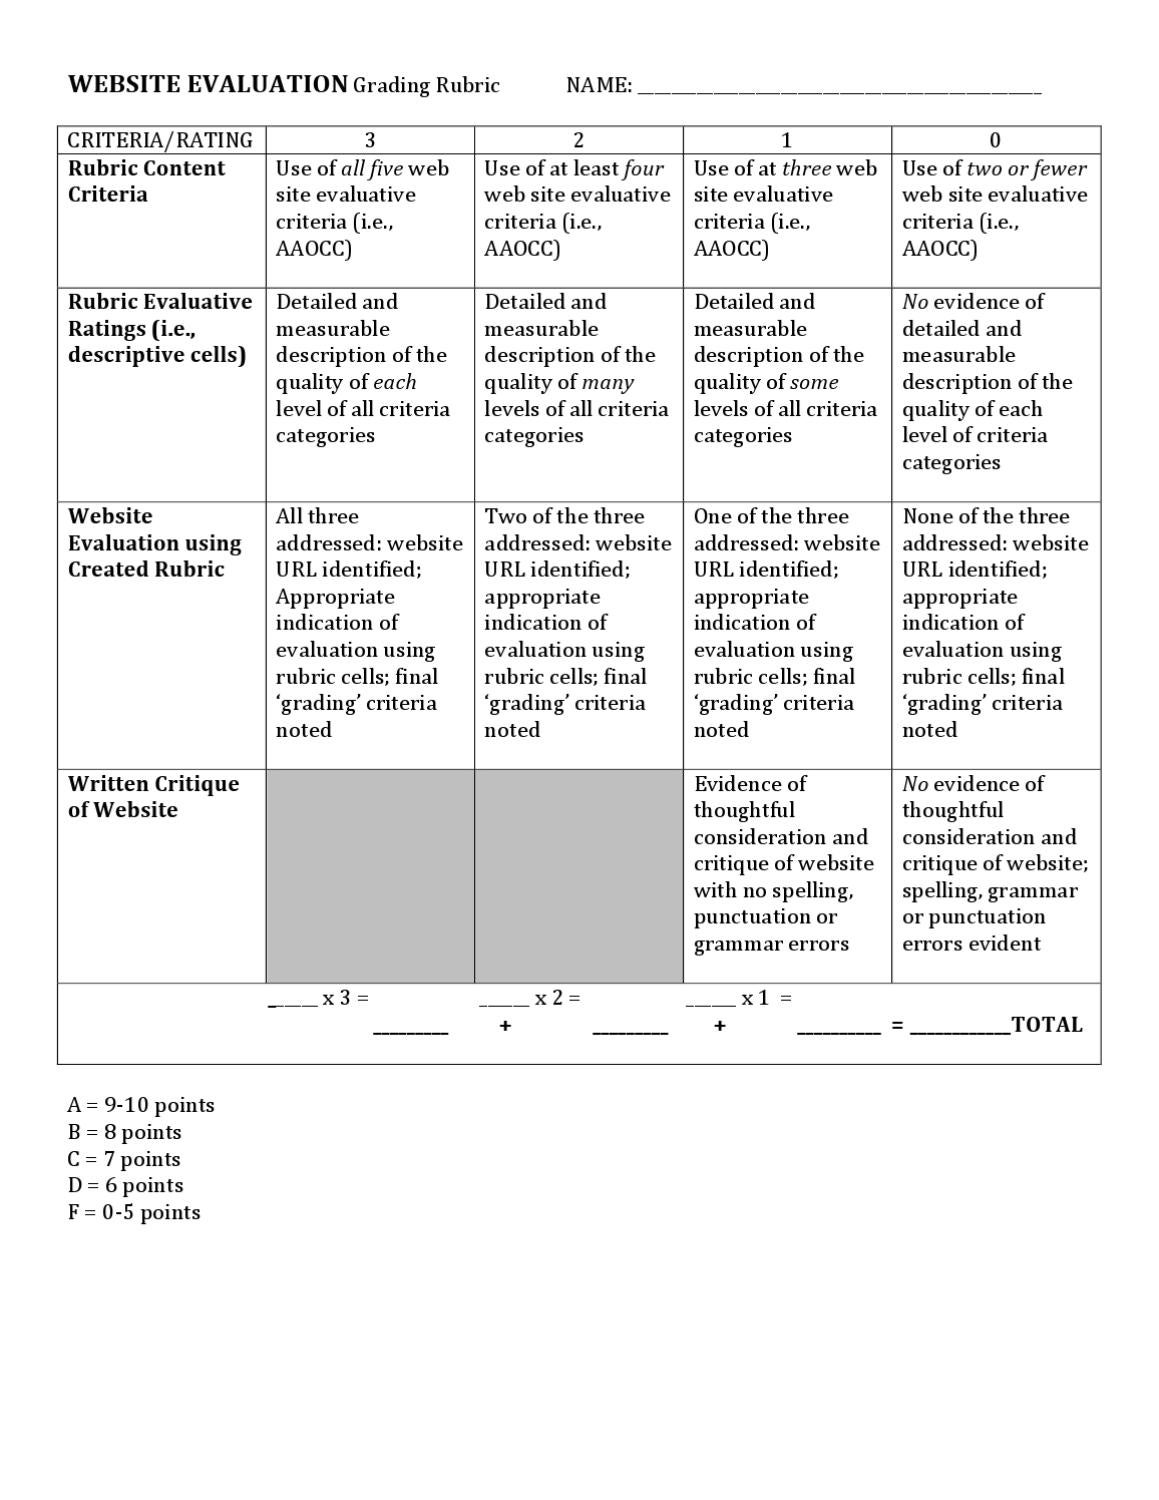 Cool Grading Rubric For Resume And Cover Letter Ideas - Example ...